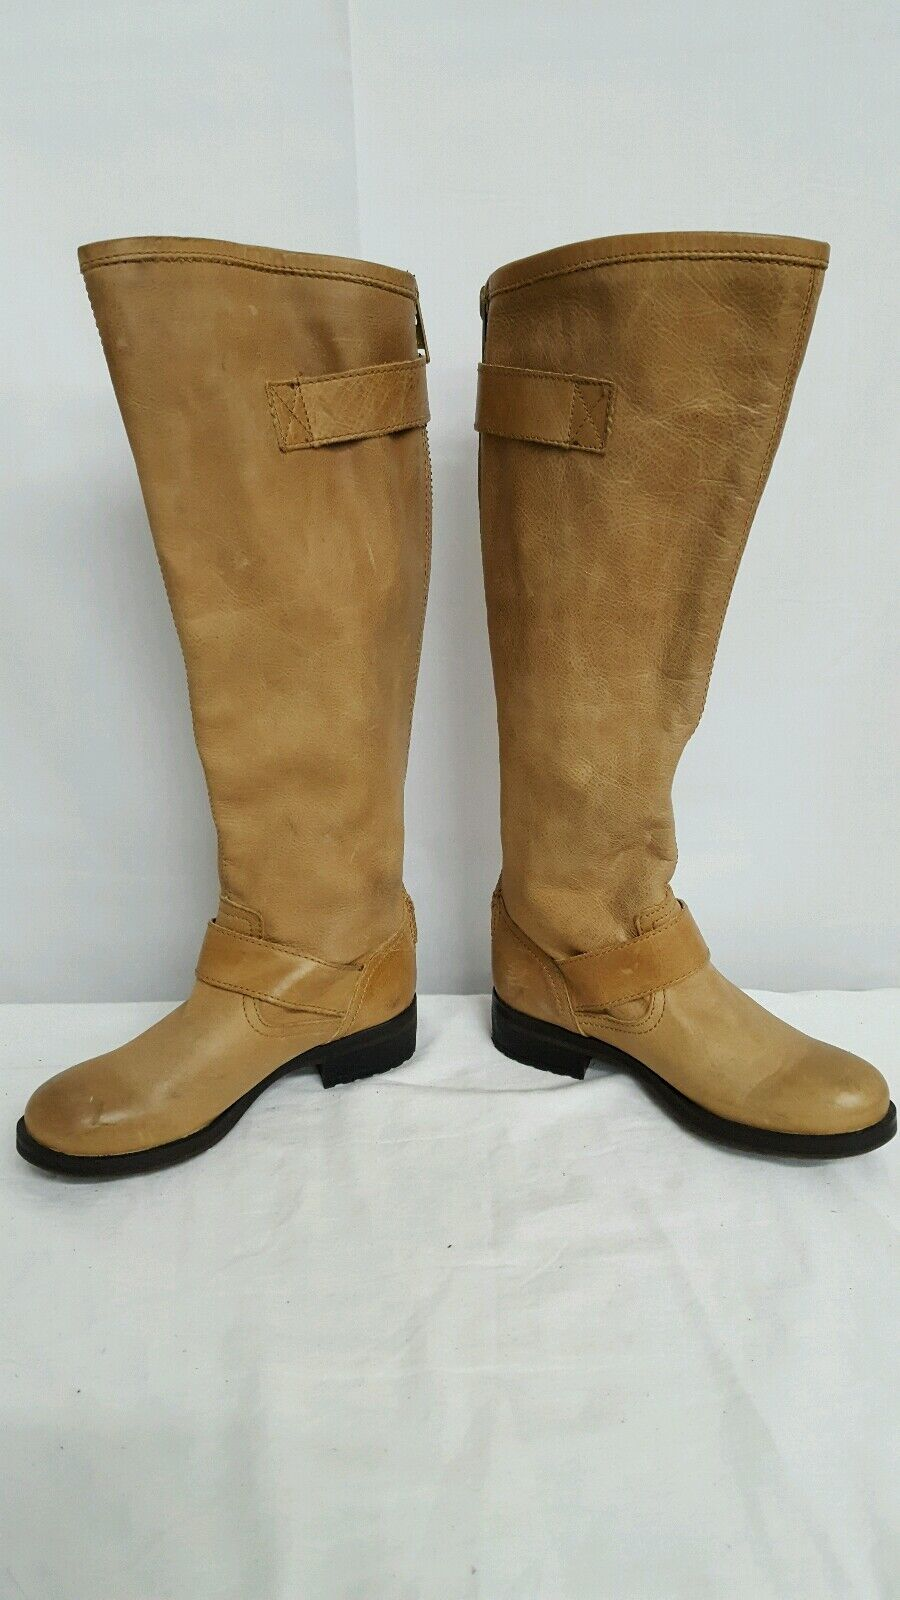 STEVE MADDEN BARTON BUCKLE LEATHER MOTORCYCLE RIDING BOOT BEIGE SZ 5 NEW   160